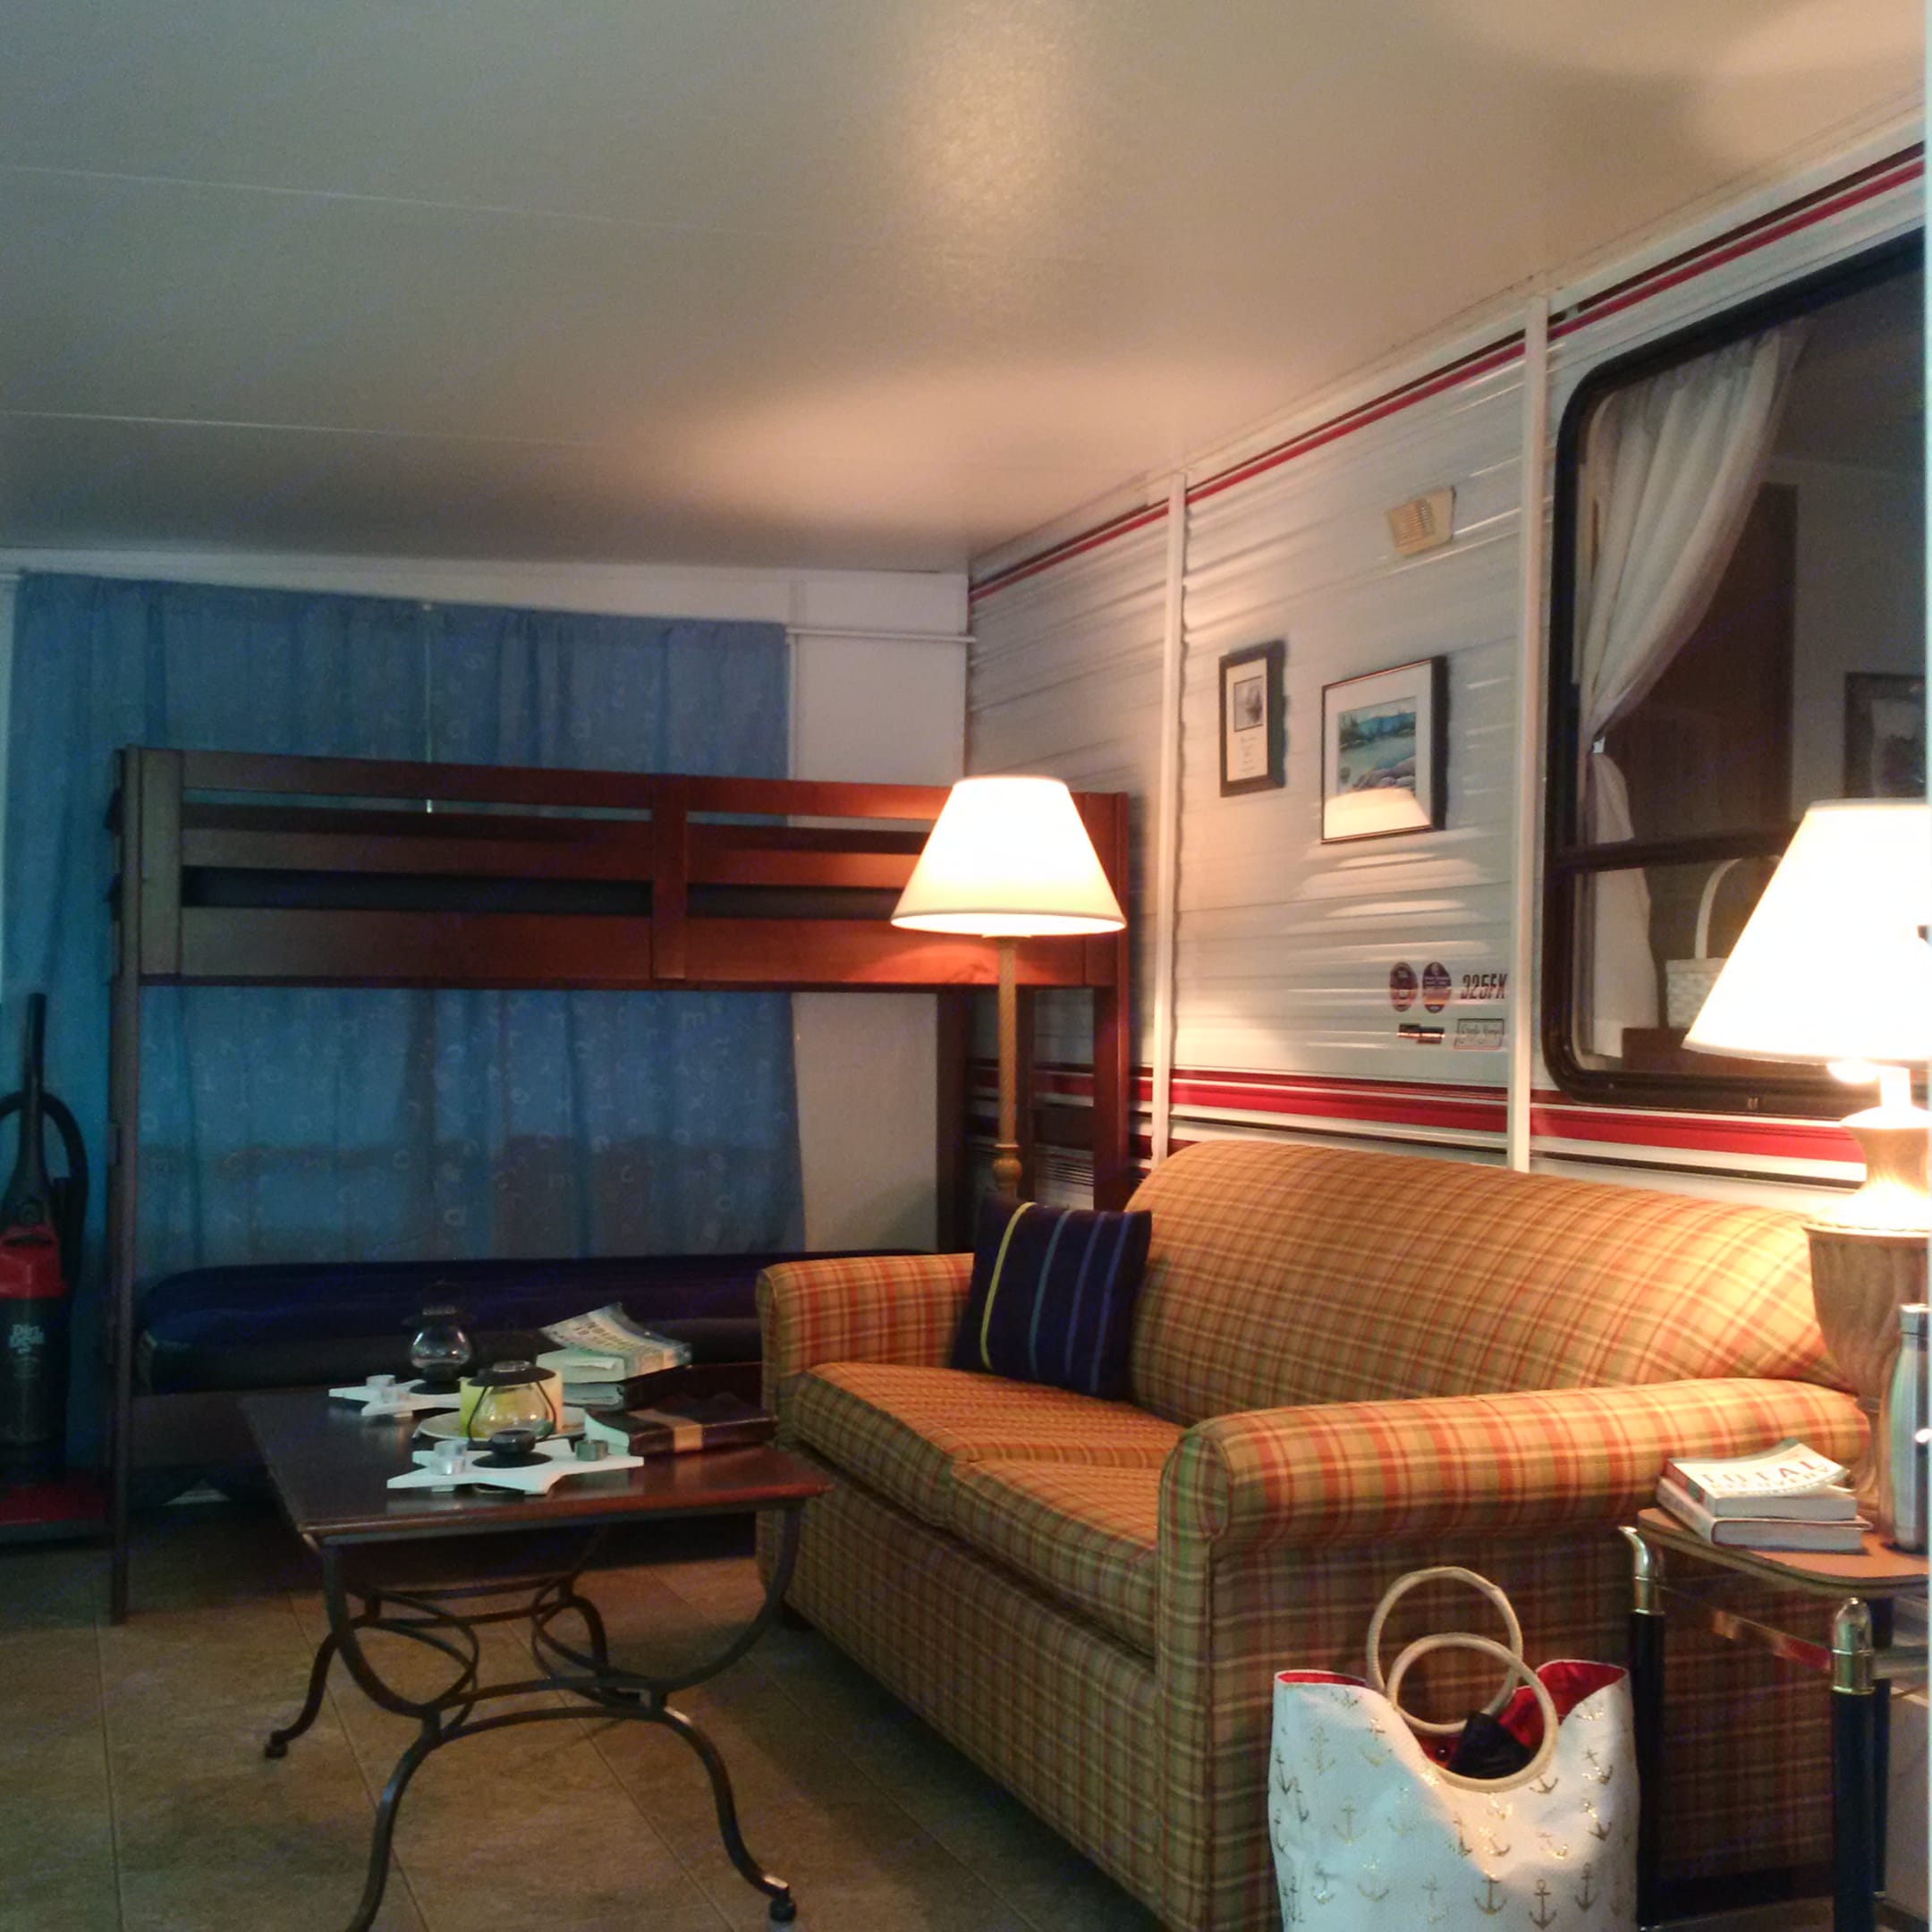 Sun room interior view - bunk beds and pull-out couch. Jayco Eagle 1992